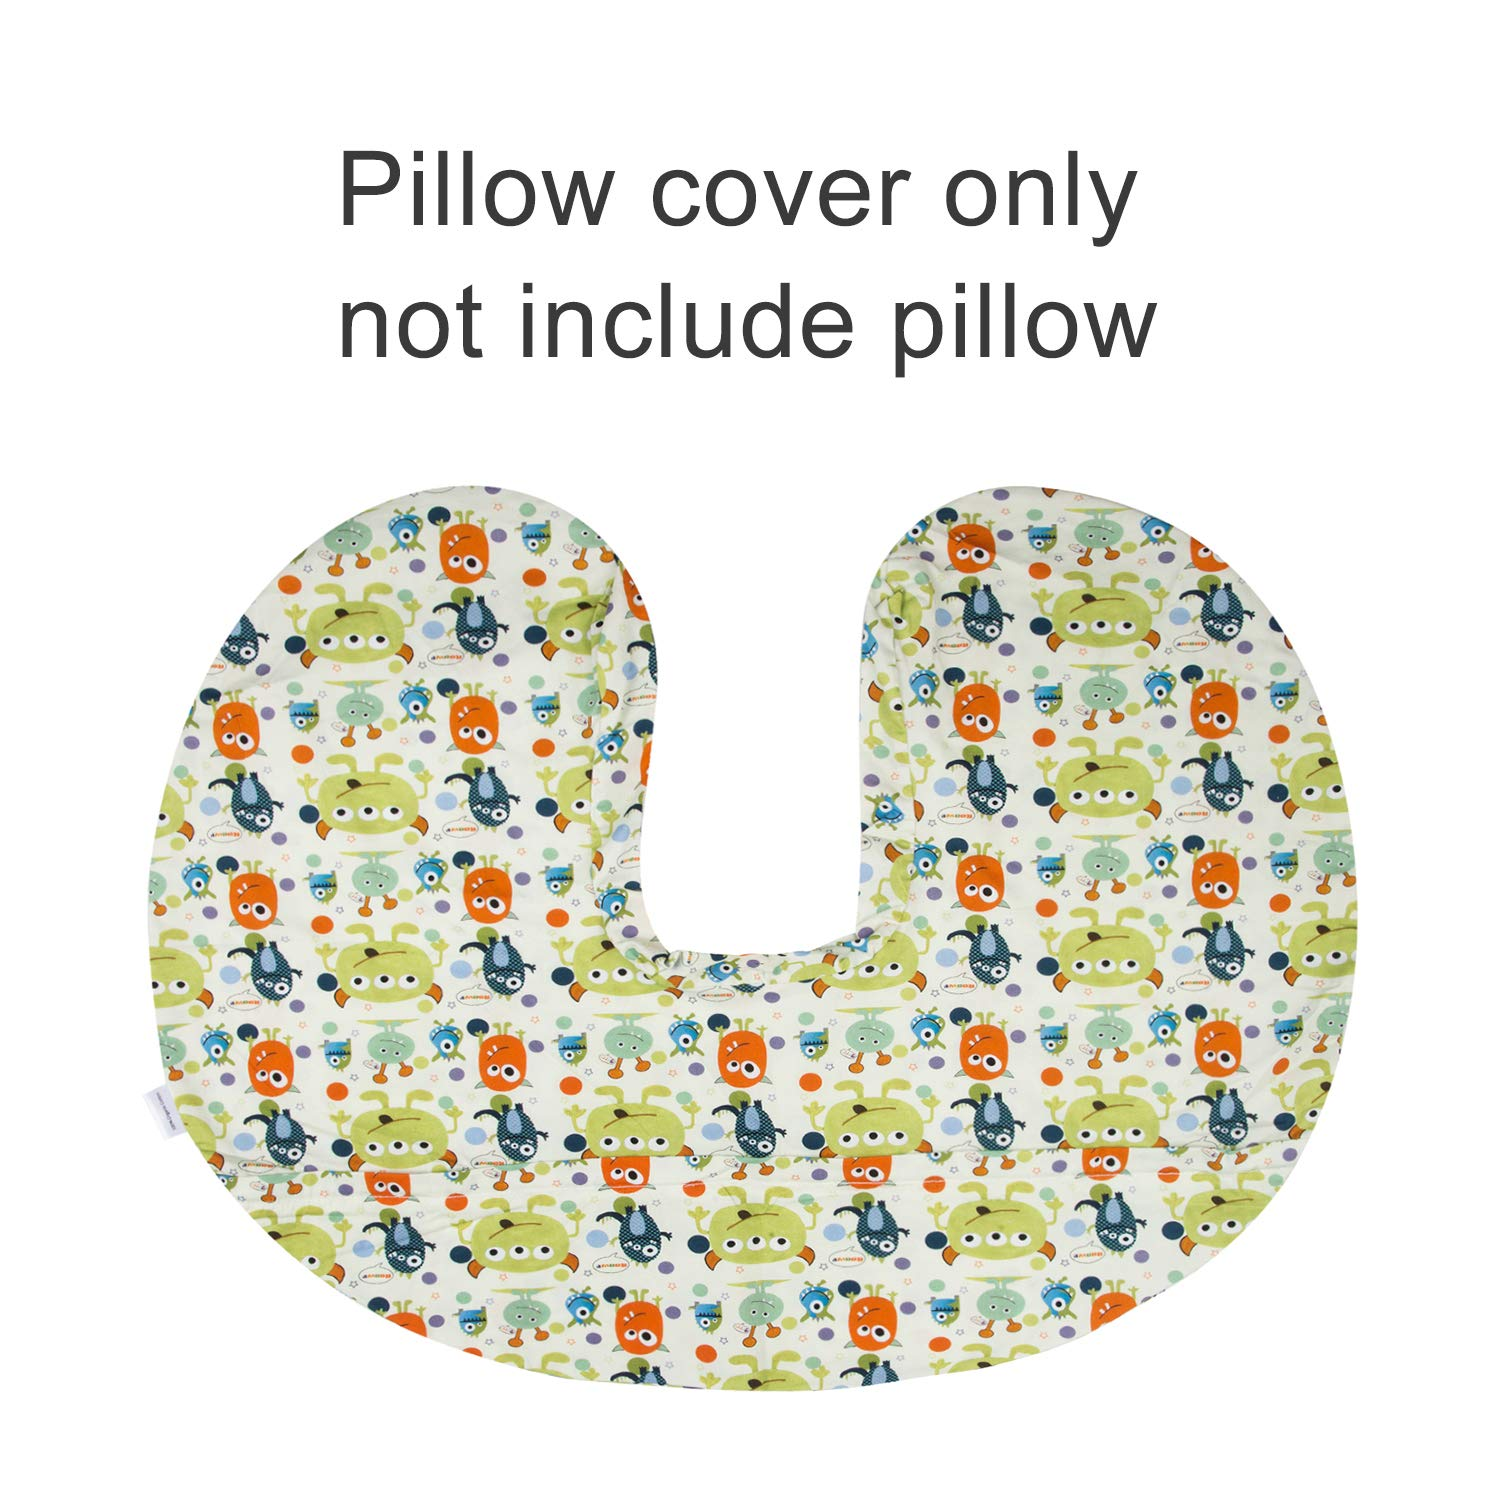 ALVABABY Nursing Pillow Cover Slipcover 100/% Organic Cotton Soft and Comfortable Maternity Breastfeeding Newborn Infant Feeding Cushion Feathers Cover Baby 2 Pack Shower Gift 2UBZT02